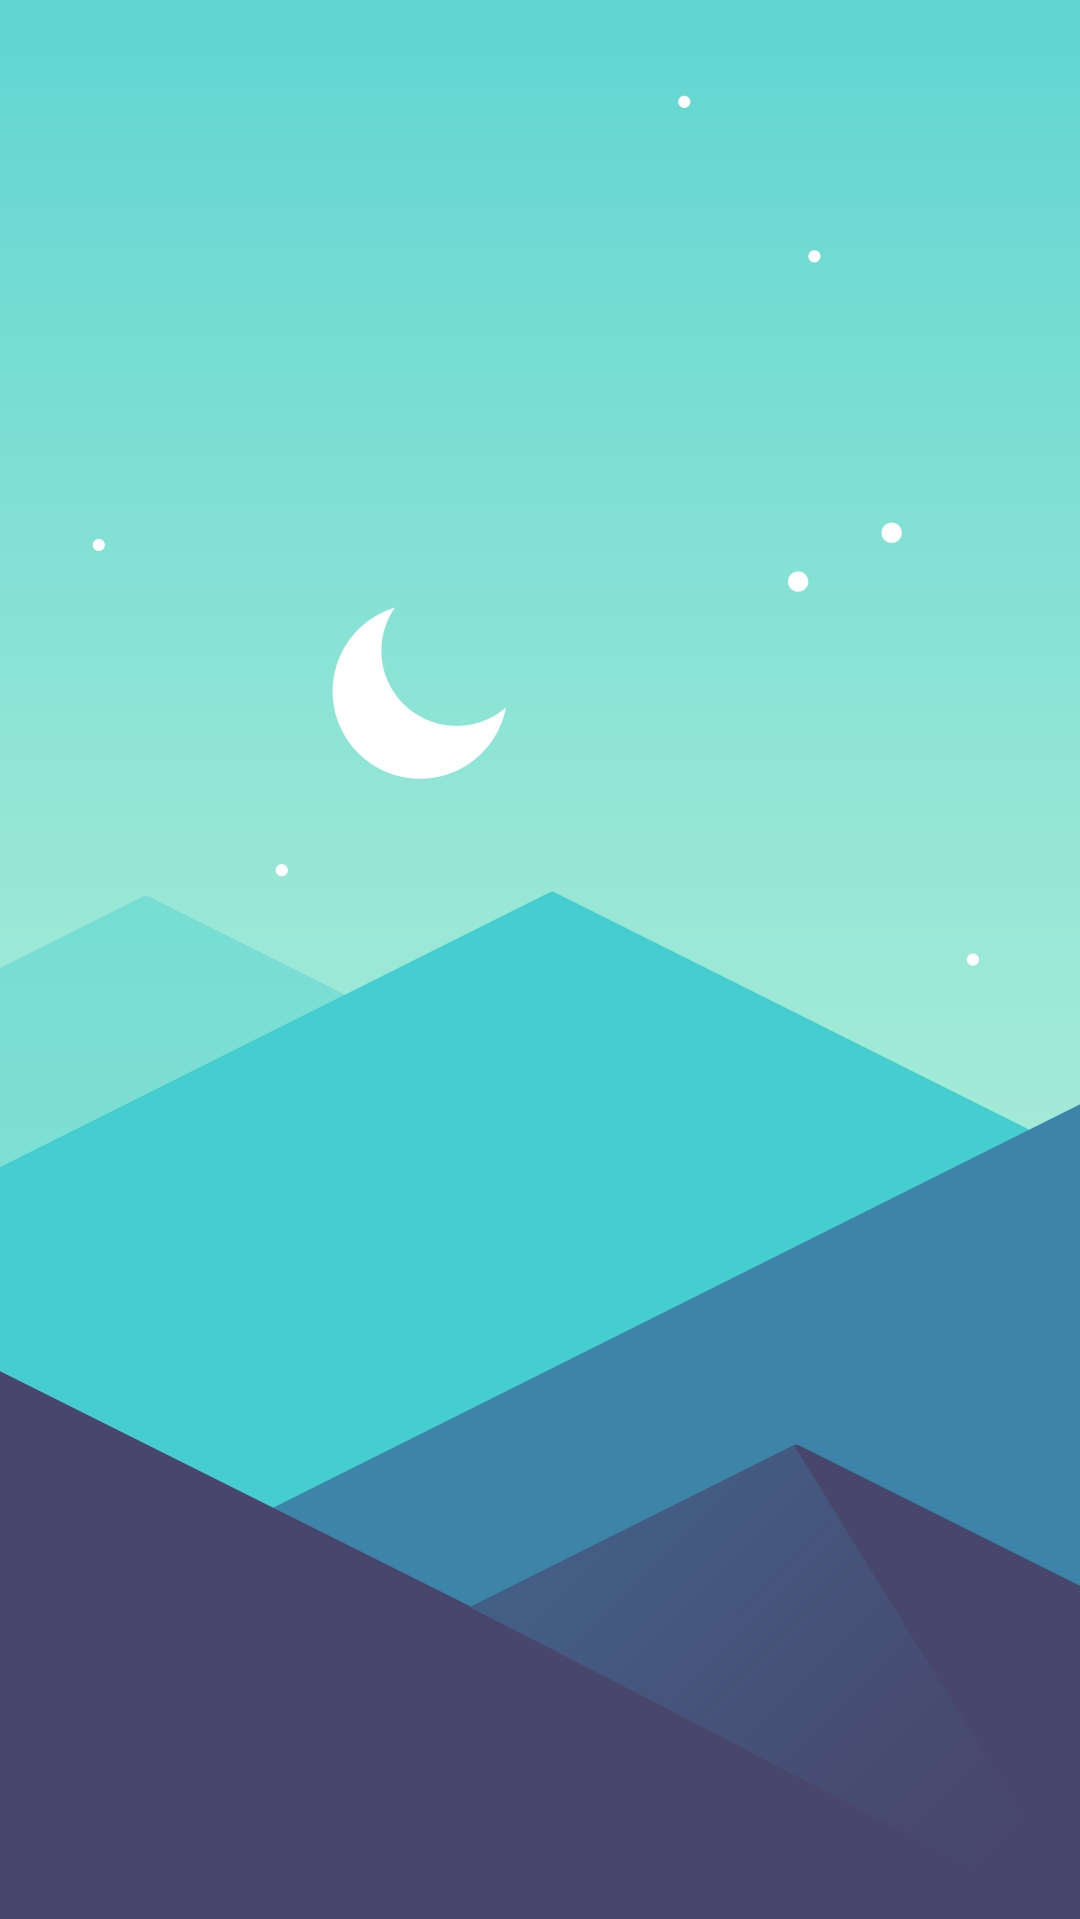 Cute Wallpapers With Quotes For Whatsapp Minimal Mountains Moon Iphone Wallpaper Iphone Wallpapers